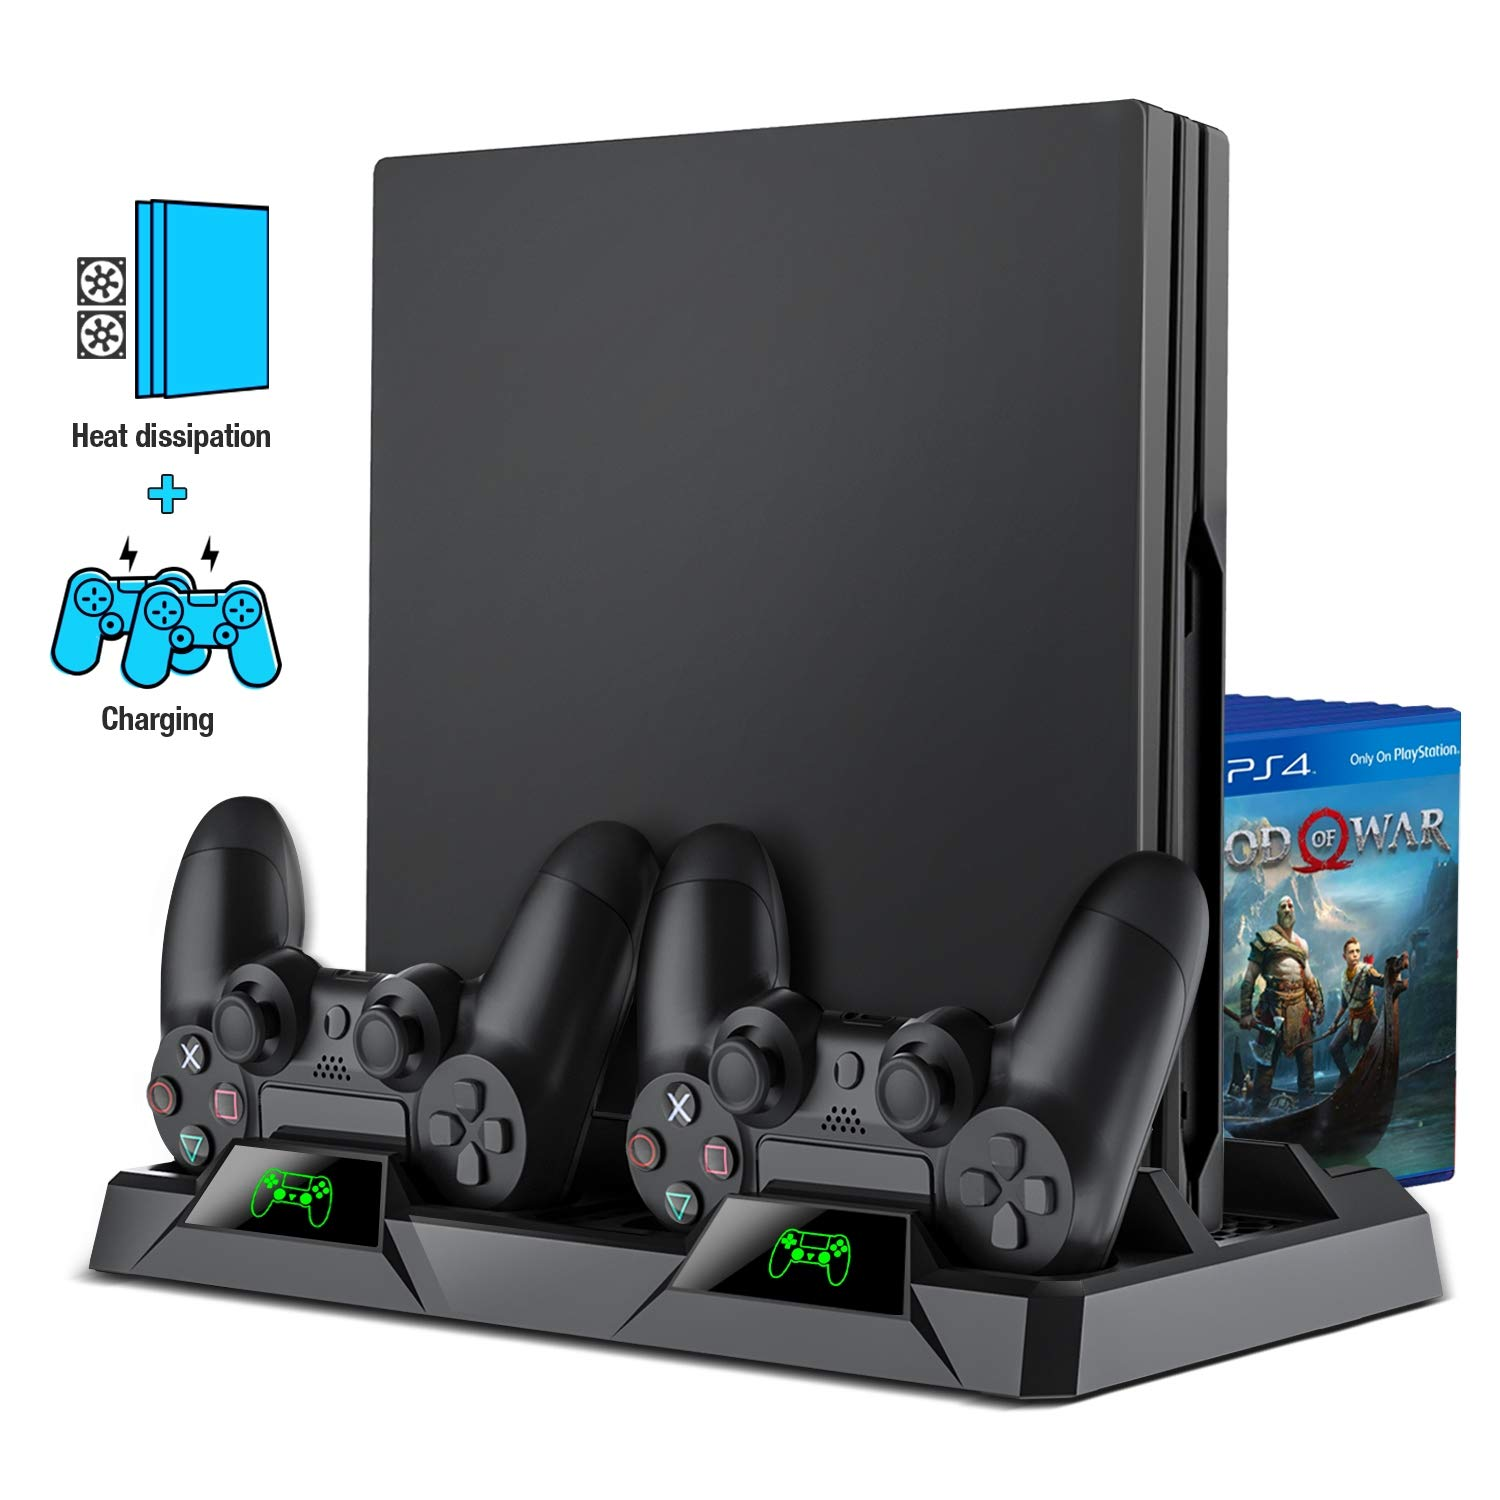 ESYWEN PS4 Slim/ PS4 pro/ PS4 Vertical Stand Cooling Fan, Dual PS4 Controller Charger with LED Indicator and Game Storage for PS4 Game Console by ESYWEN